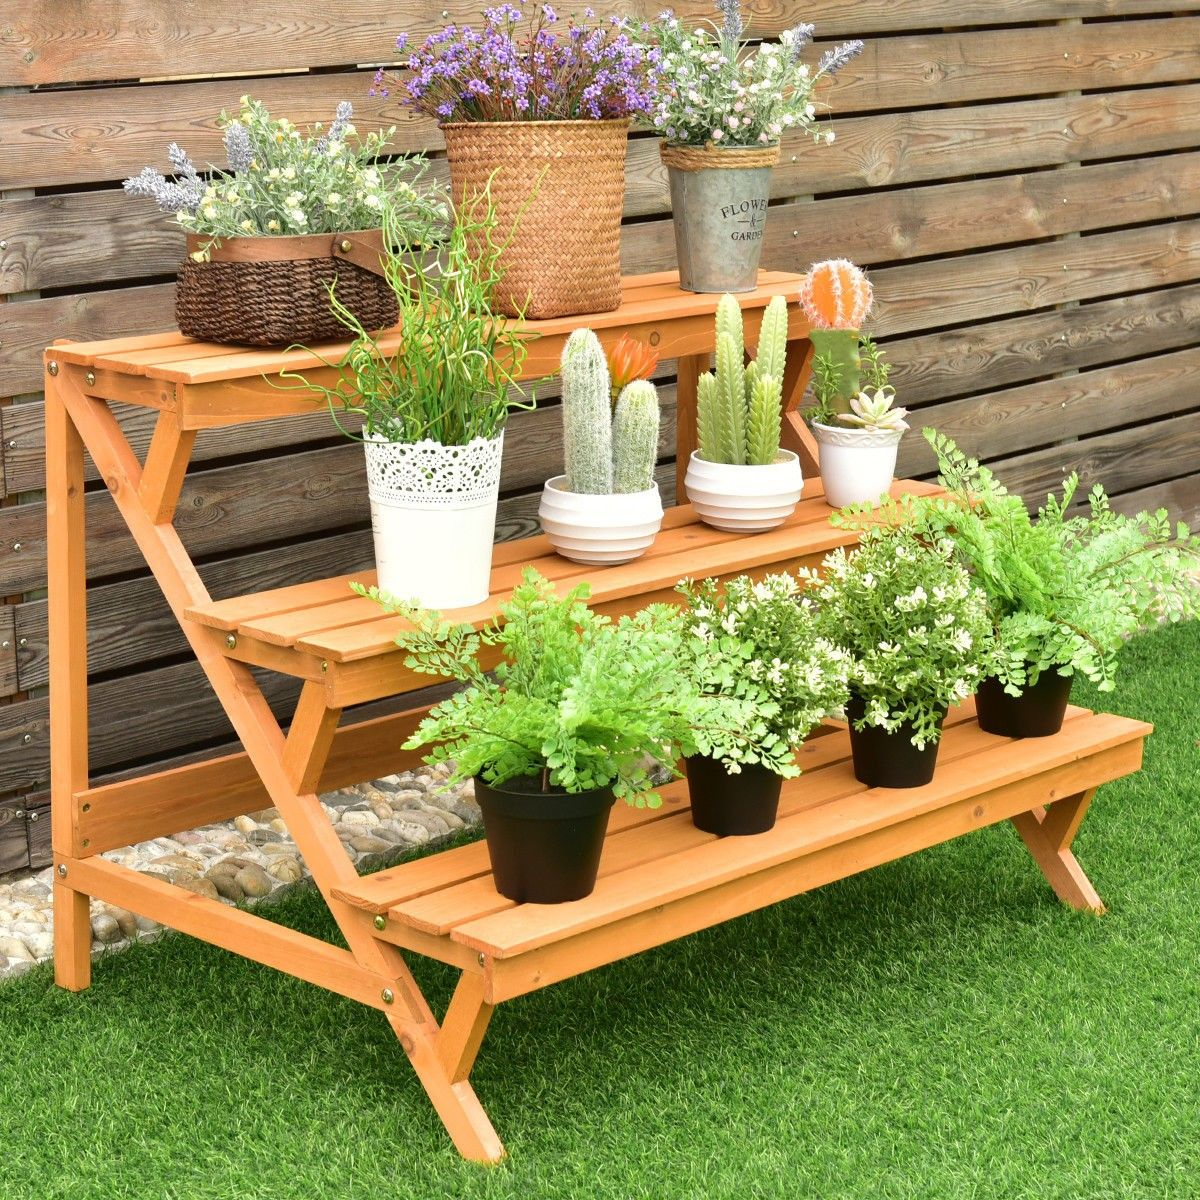 3 Tiers Wooden Step Ladder Plant Pot Rack Stand Pallet Garden